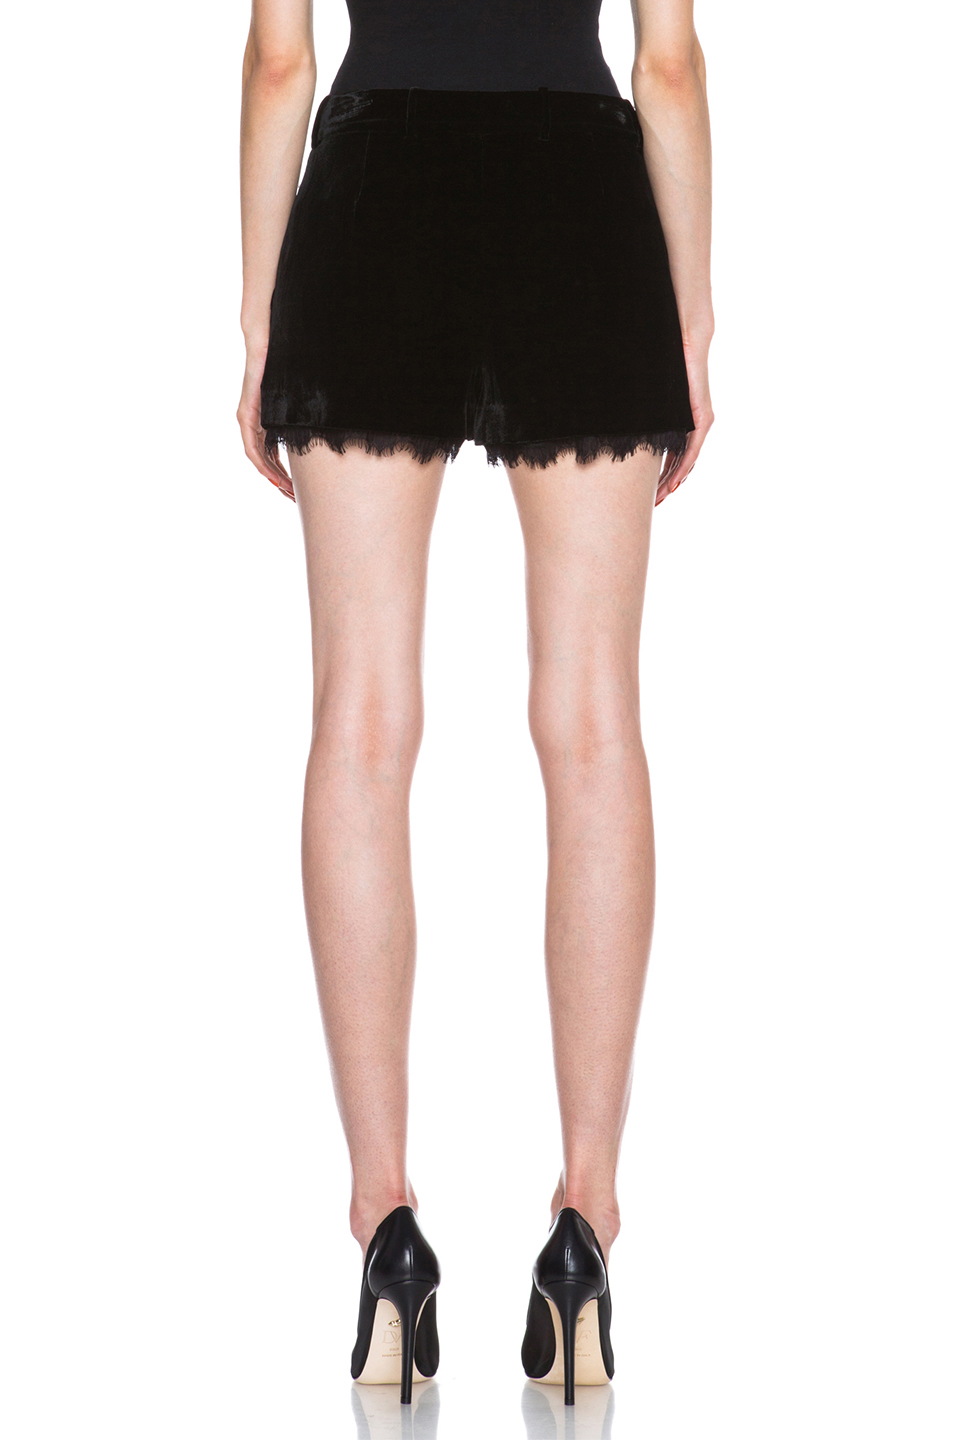 Diane von Furstenberg|Yara Velvet with Lace Shorts in Black